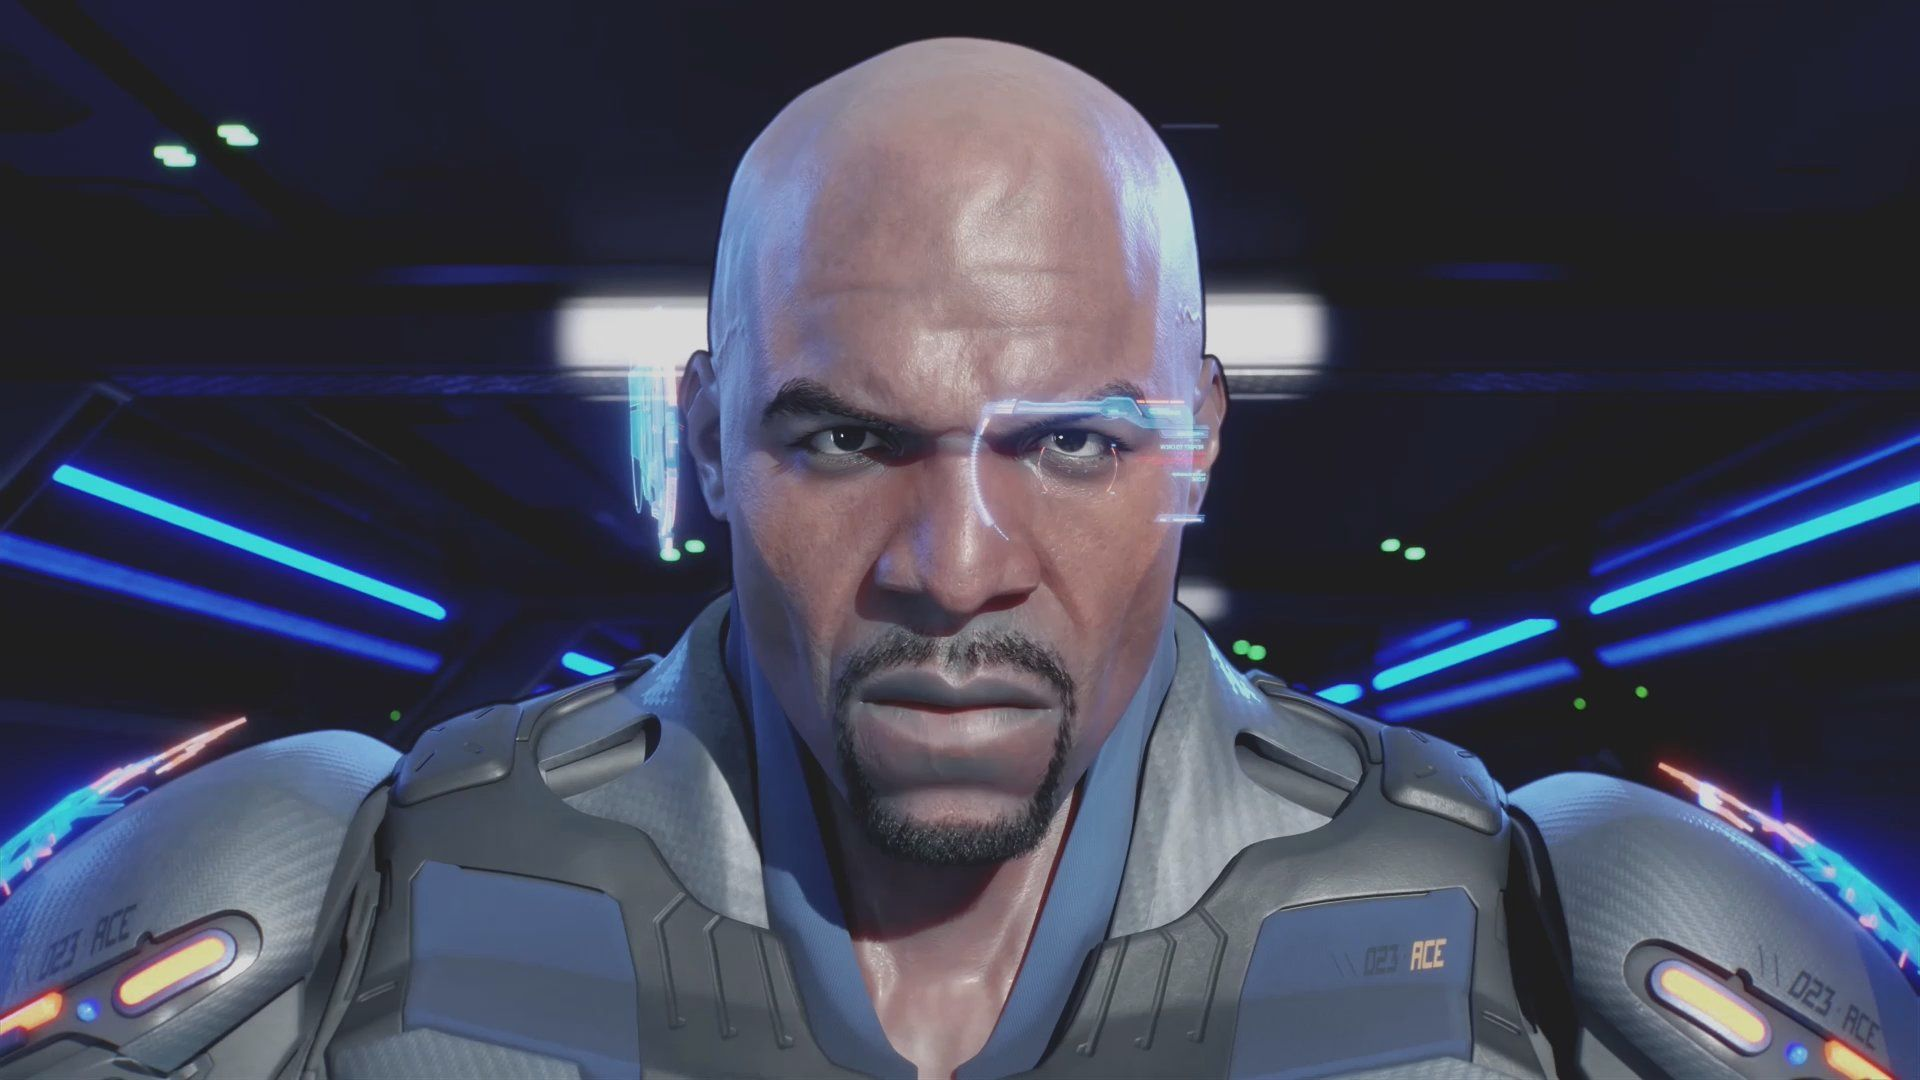 'Crackdown 3' feels dated after four years of development